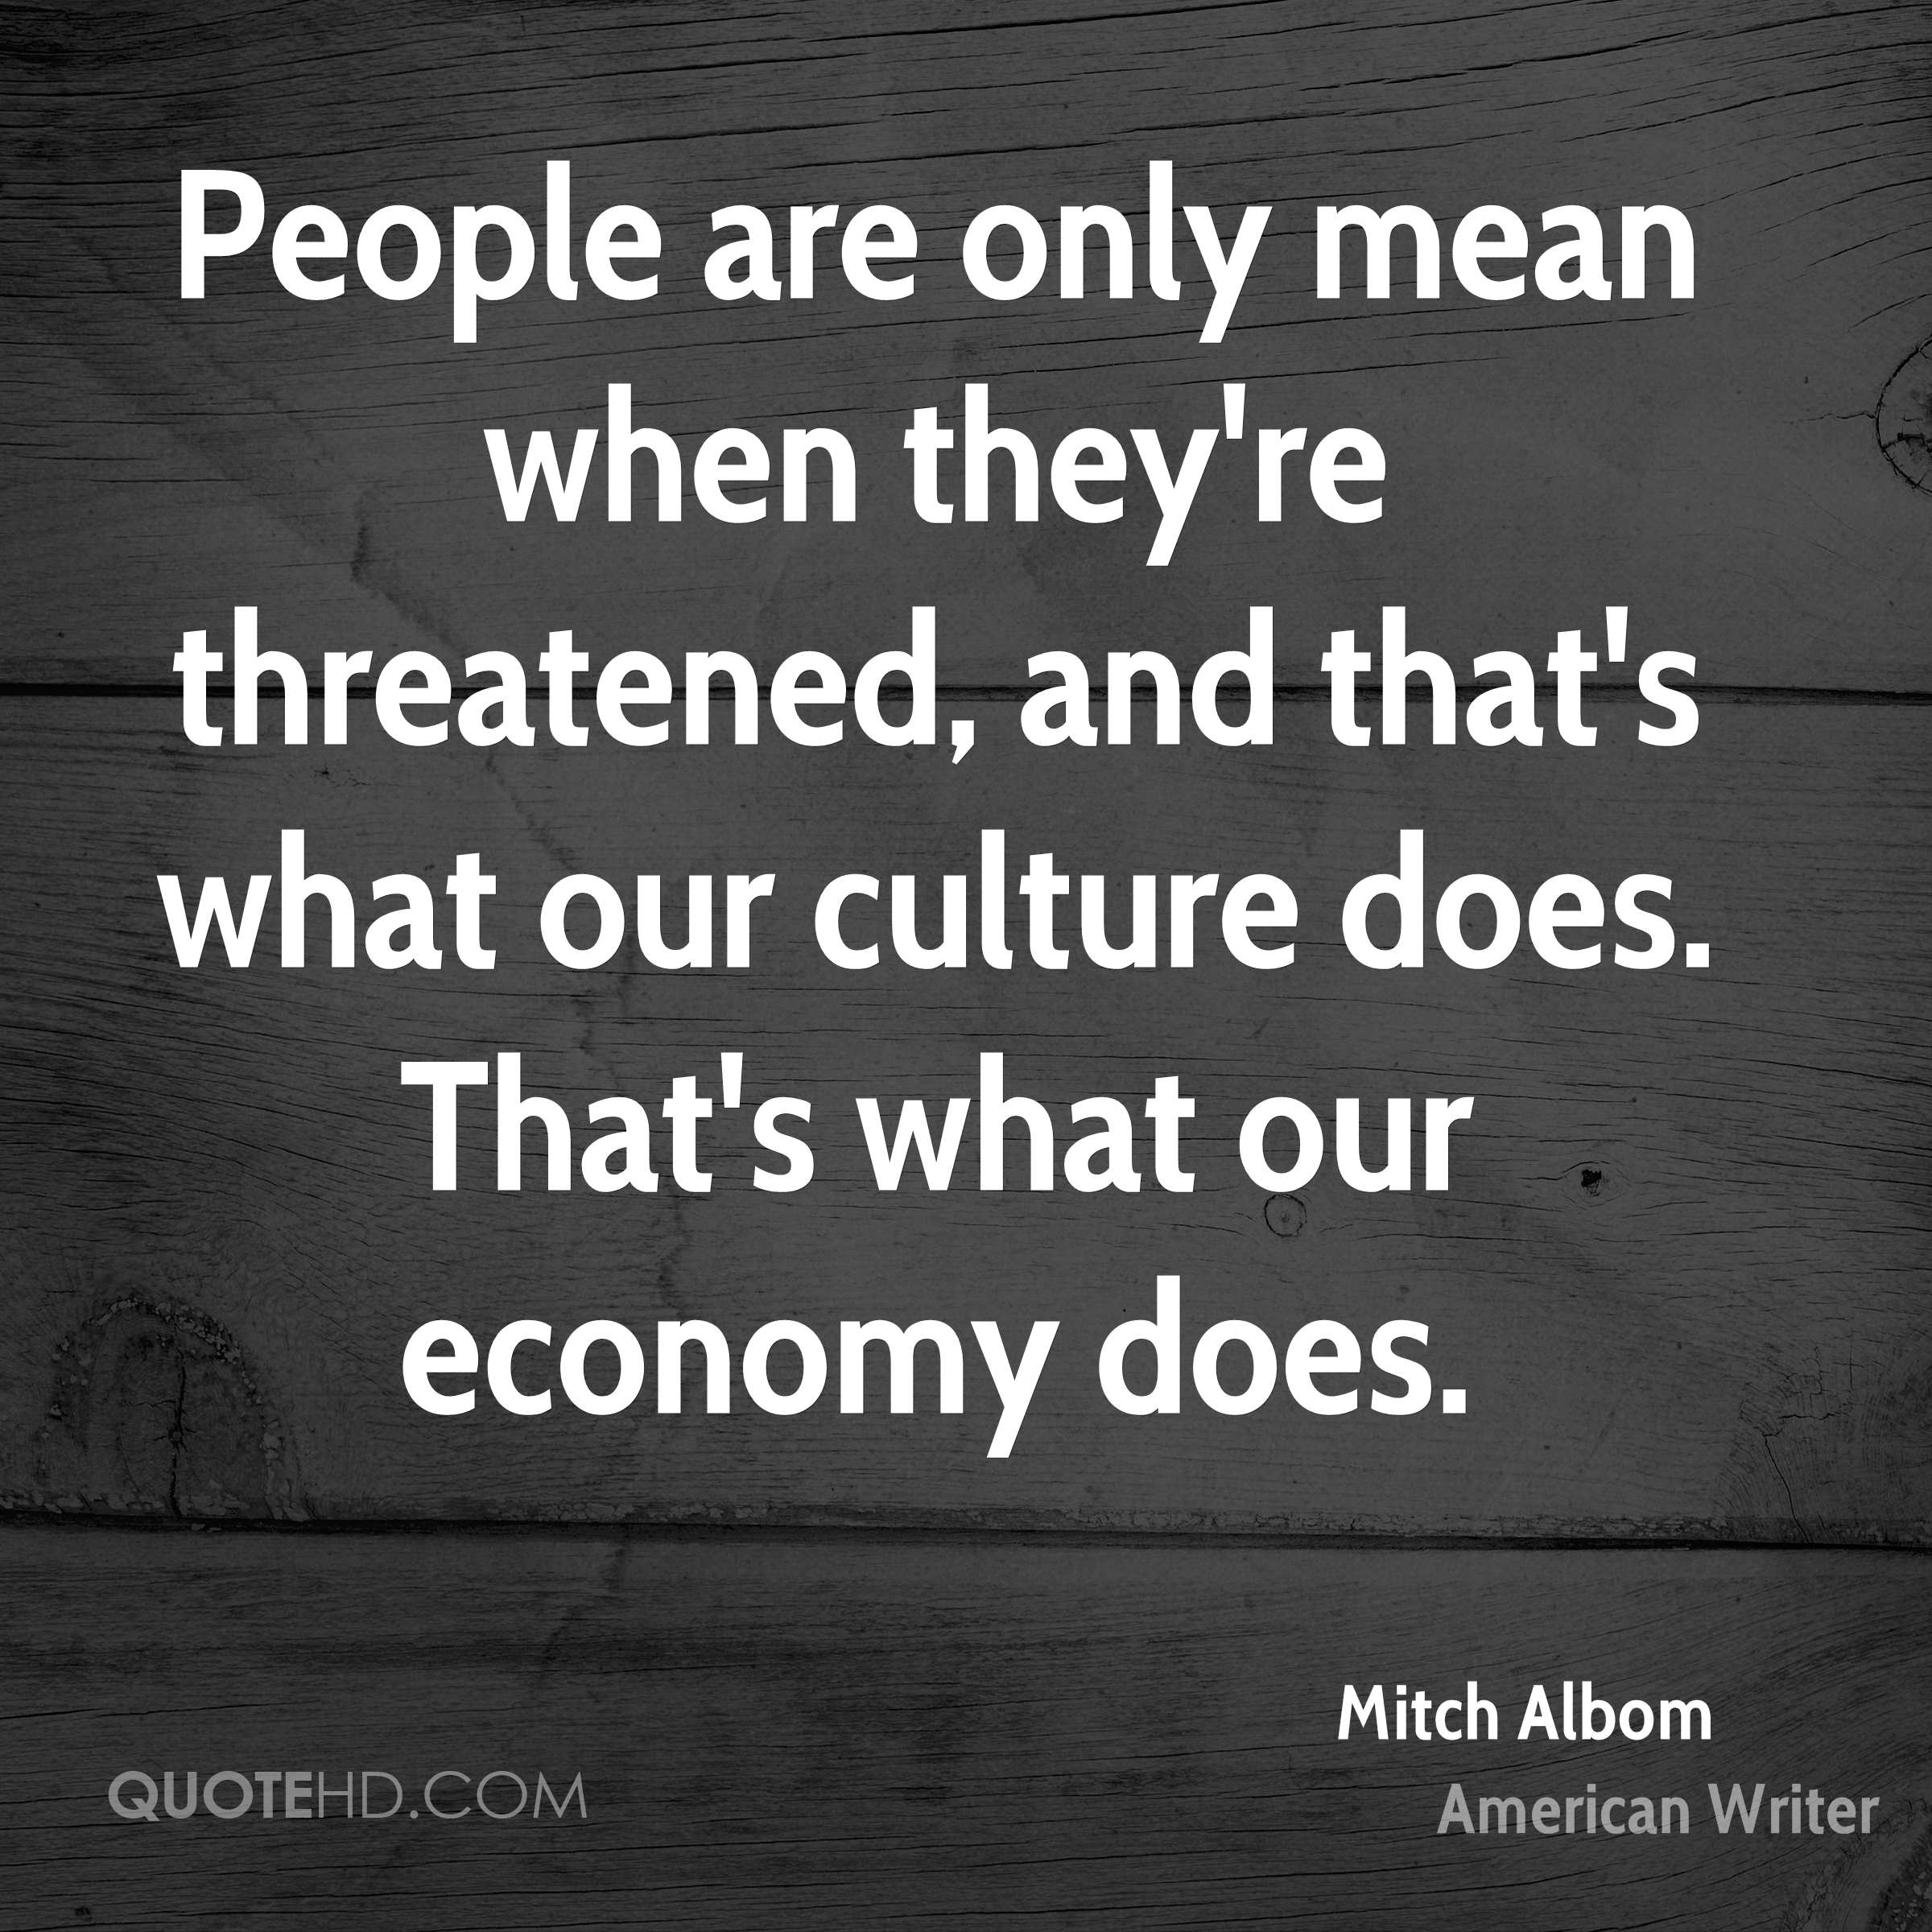 People are only mean when they're threatened, and that's what our culture does. That's what our economy does.